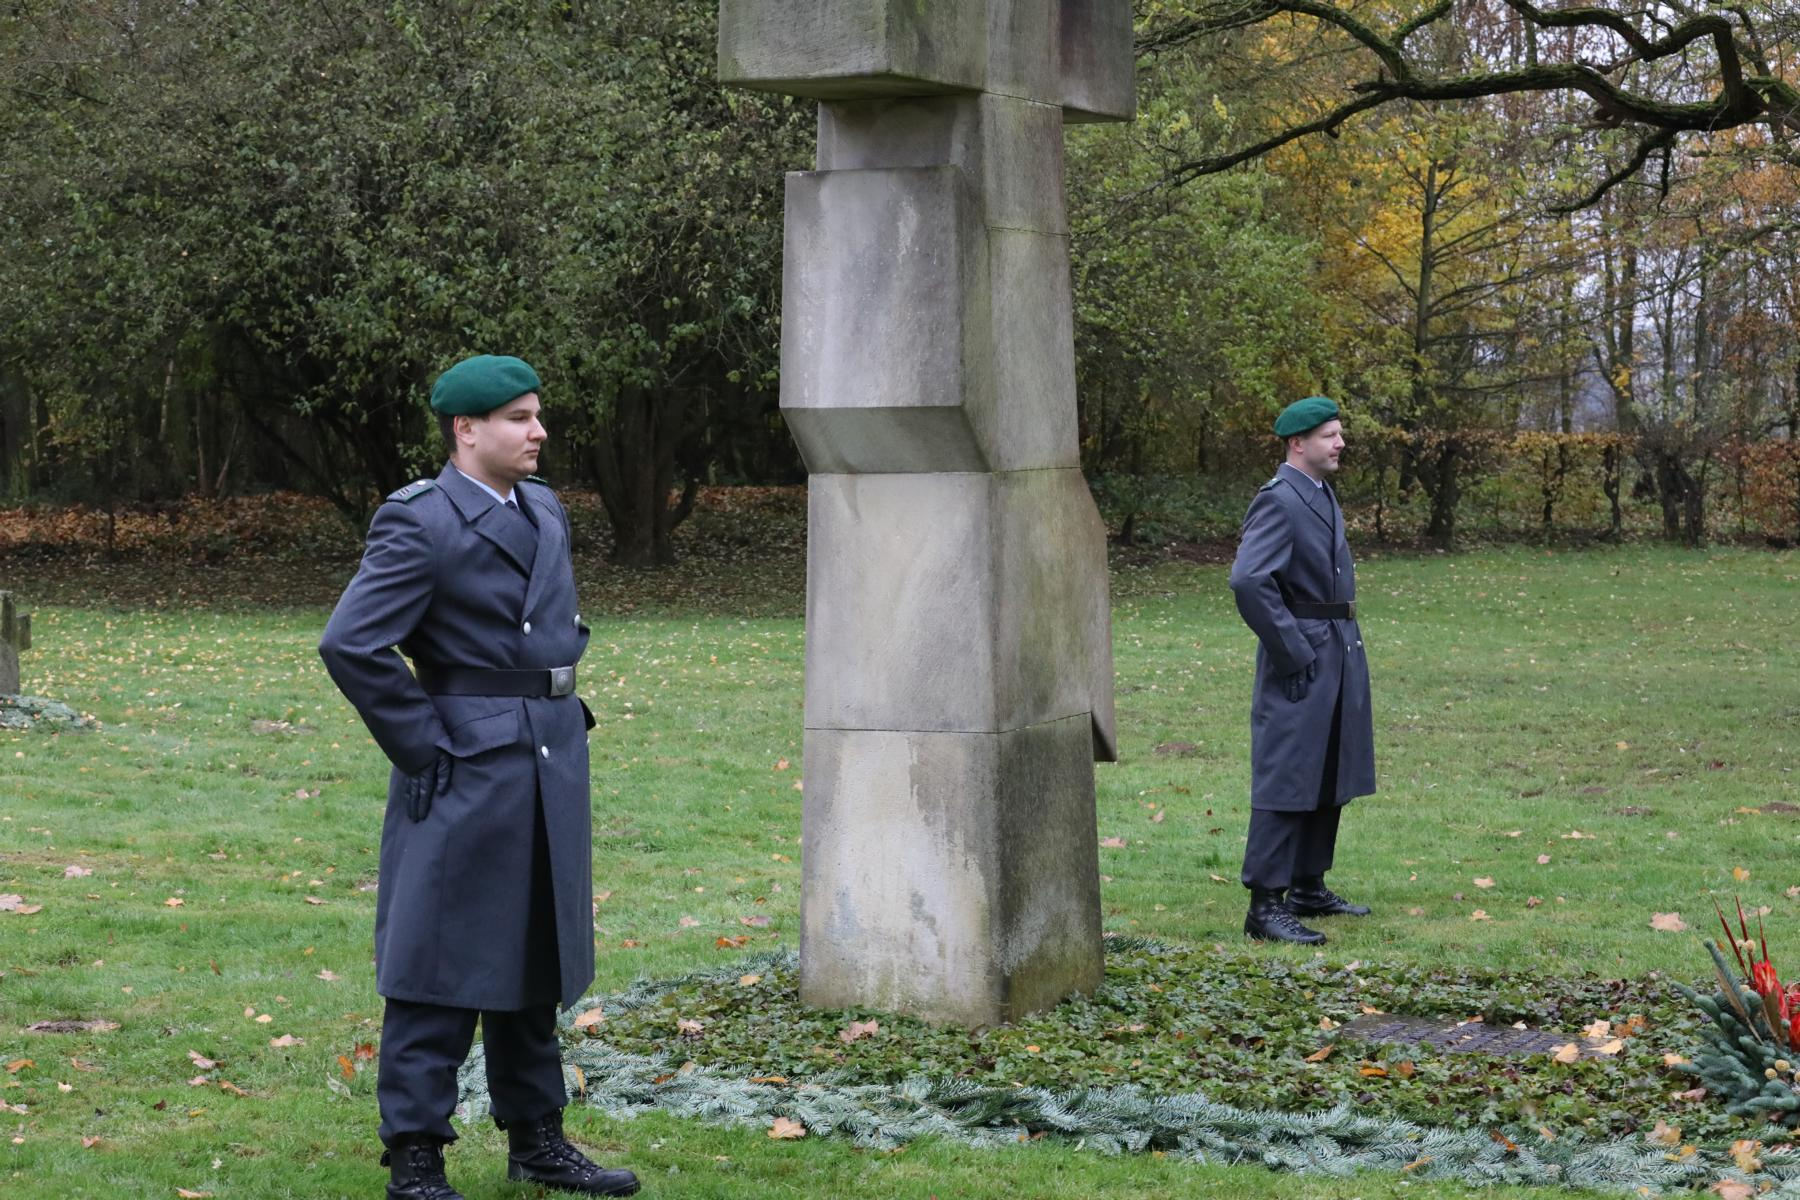 Auf dem Russischen Friedhof in NIEDERZWEHREN